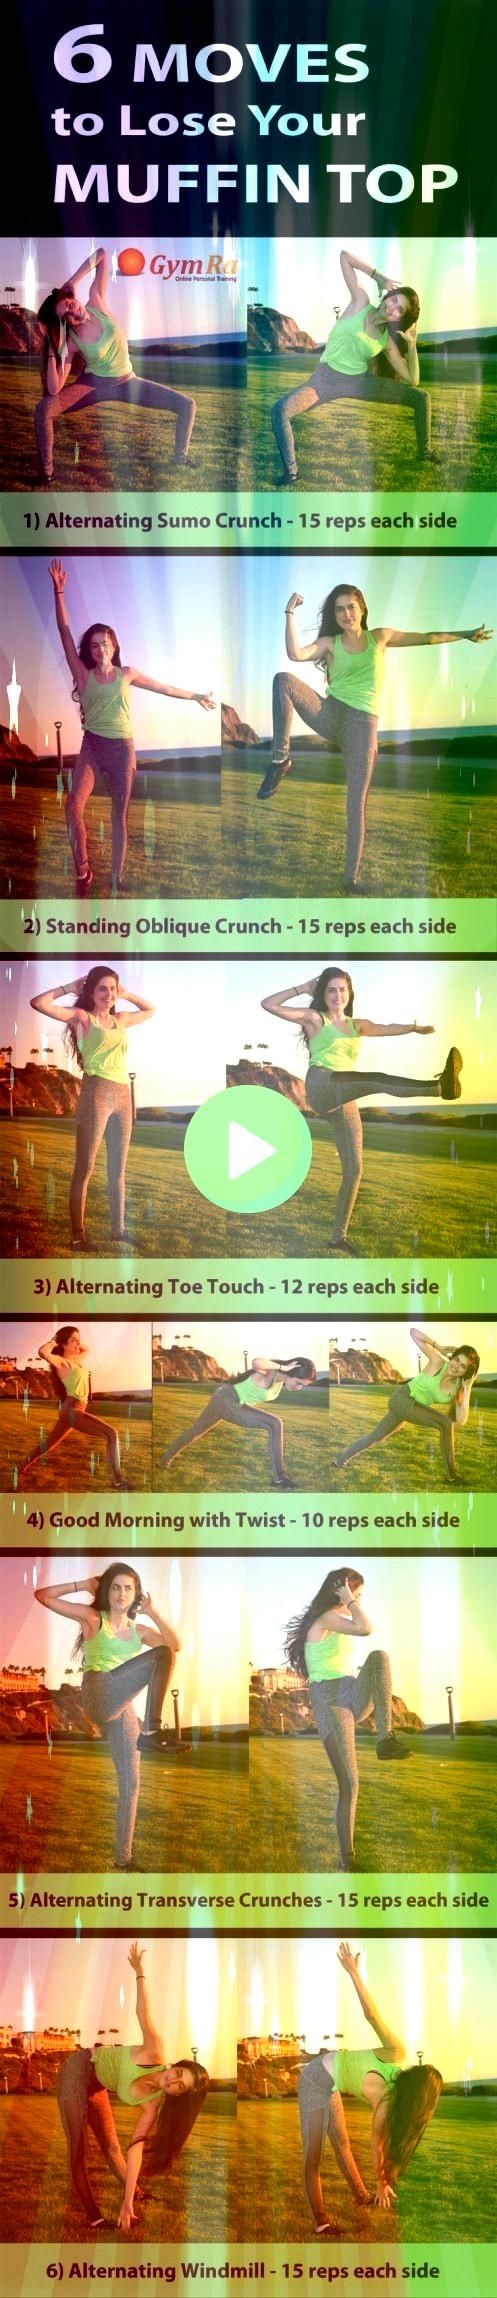 the extra baggageLose the extra baggage Amazing Abs and Core workout for women Have 60 seconds rest in between sets 1 medicine oblique crunch 3 x 15 each side 2 cable obl...